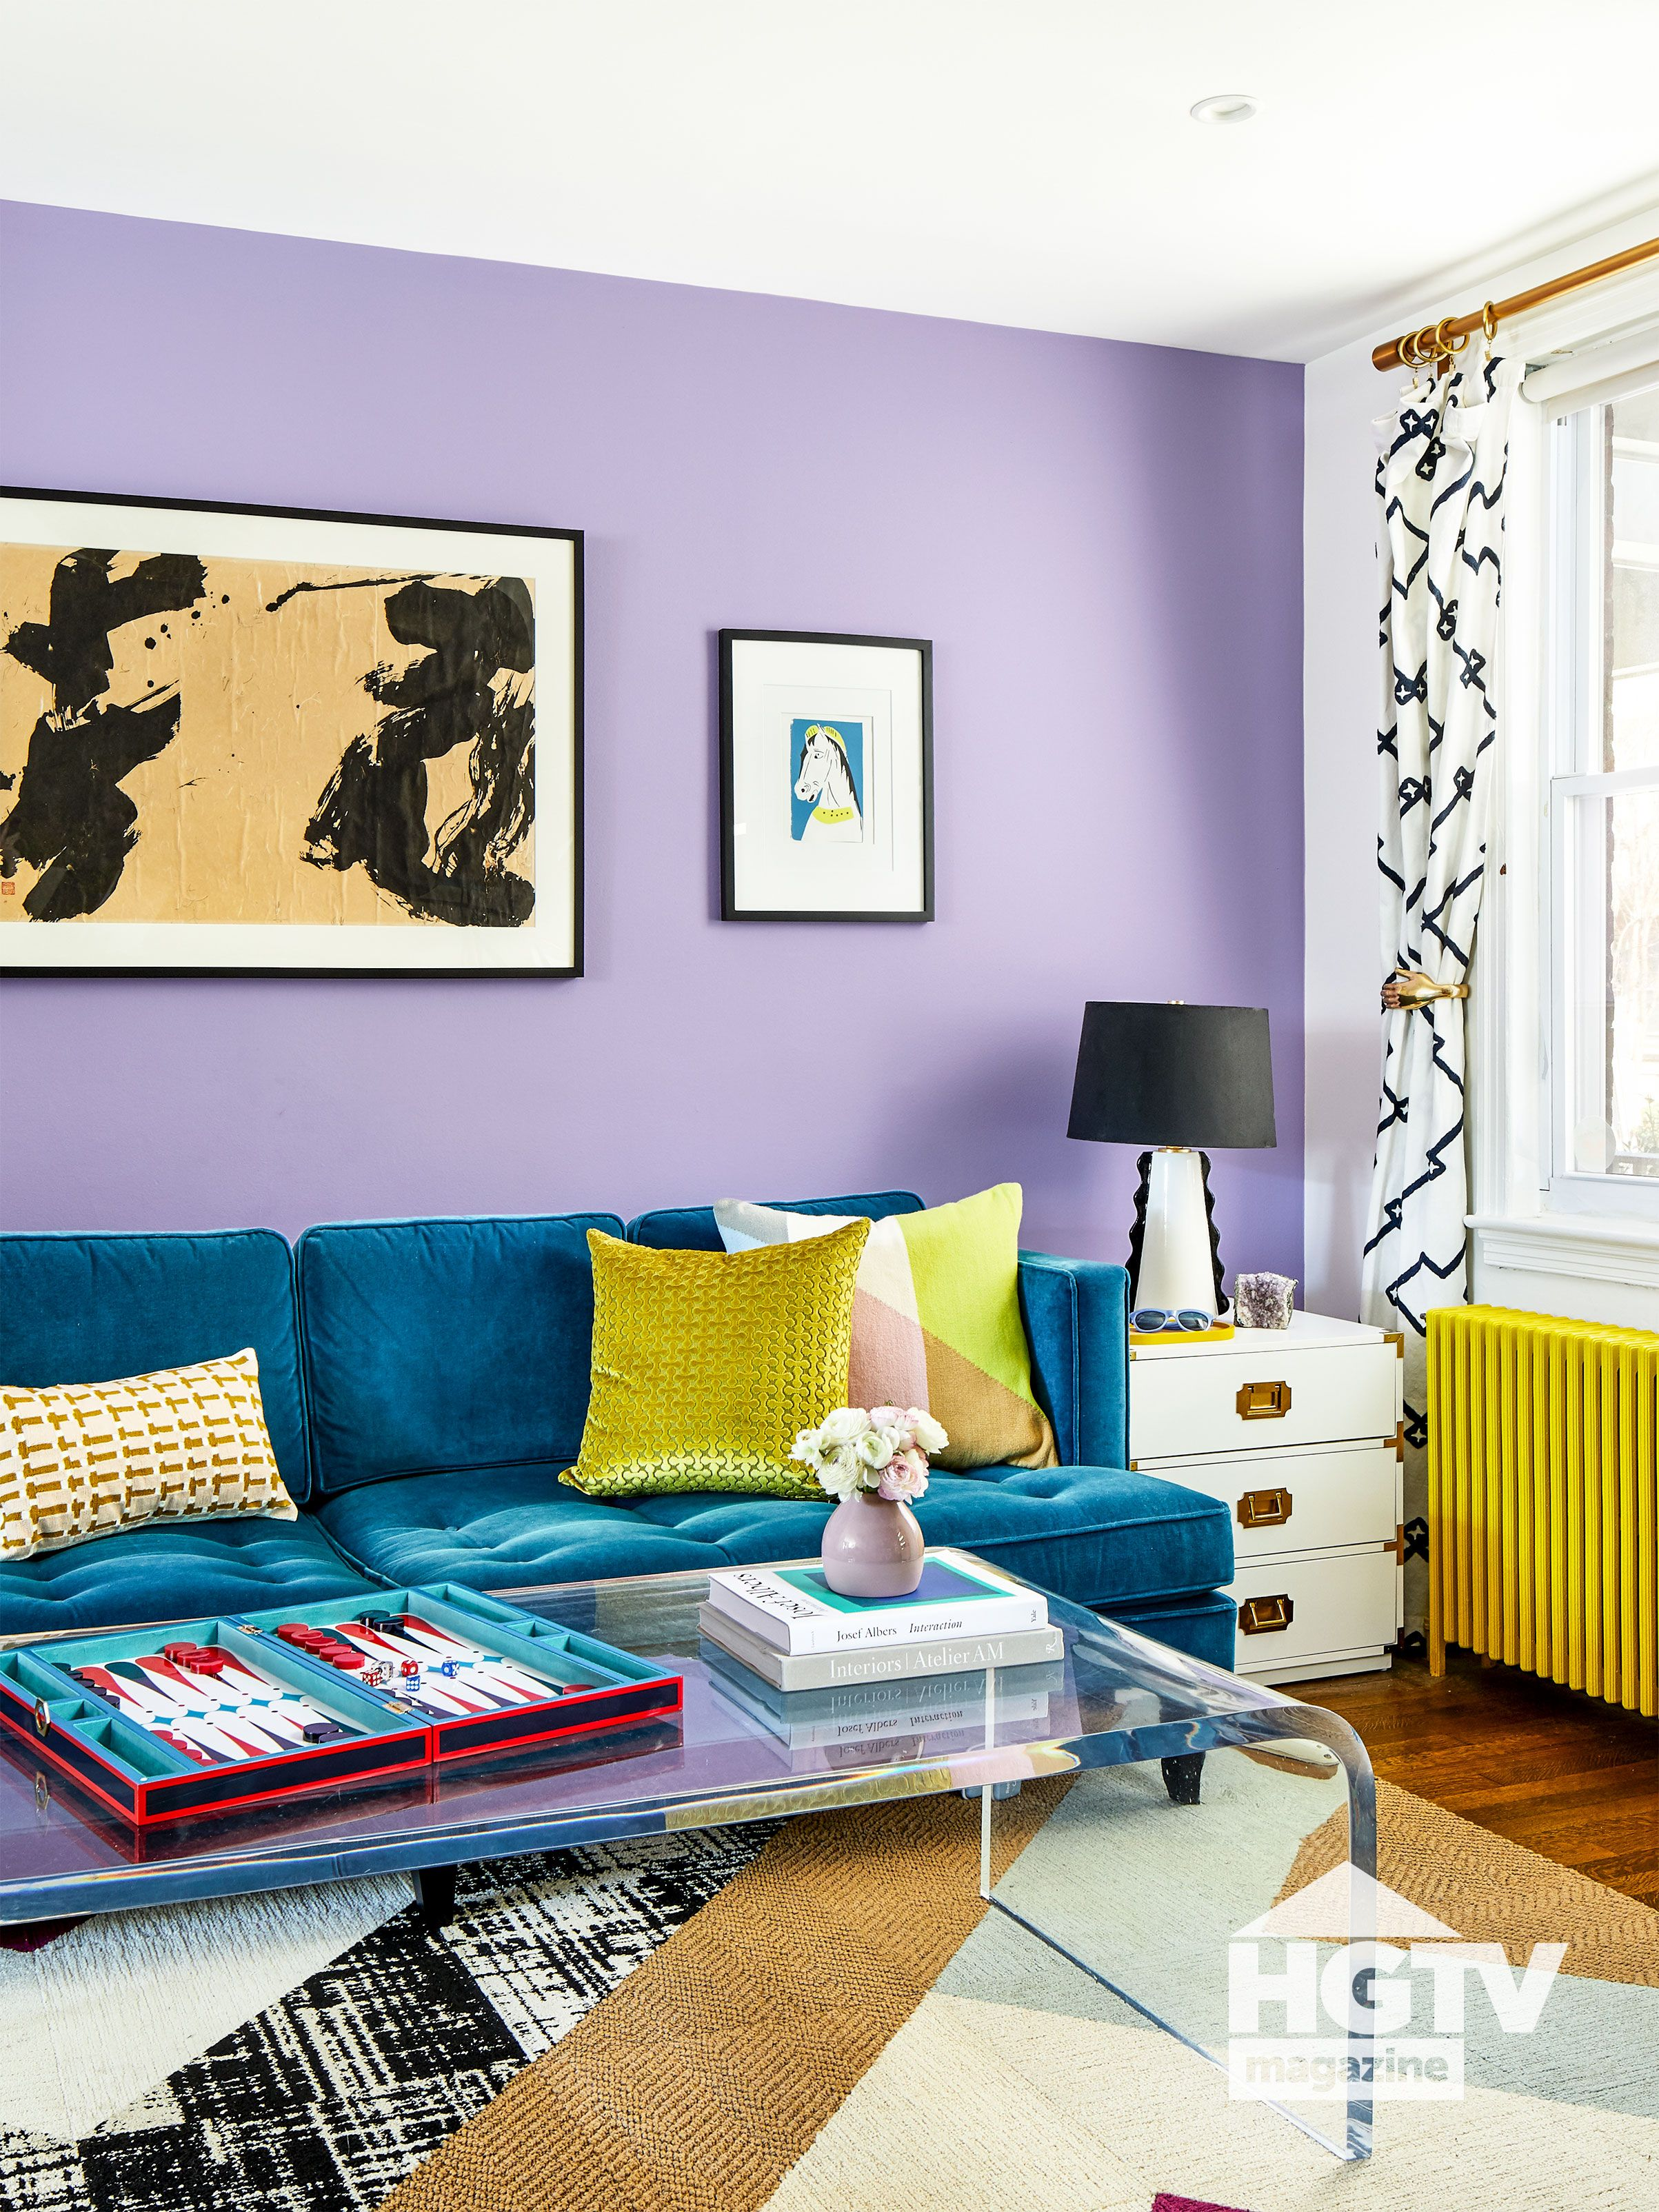 A Modern Chic Living Room From Hgtv Magazine Purple Walls Living Room Colorful Living Room Bright Yellow Walls Living Room